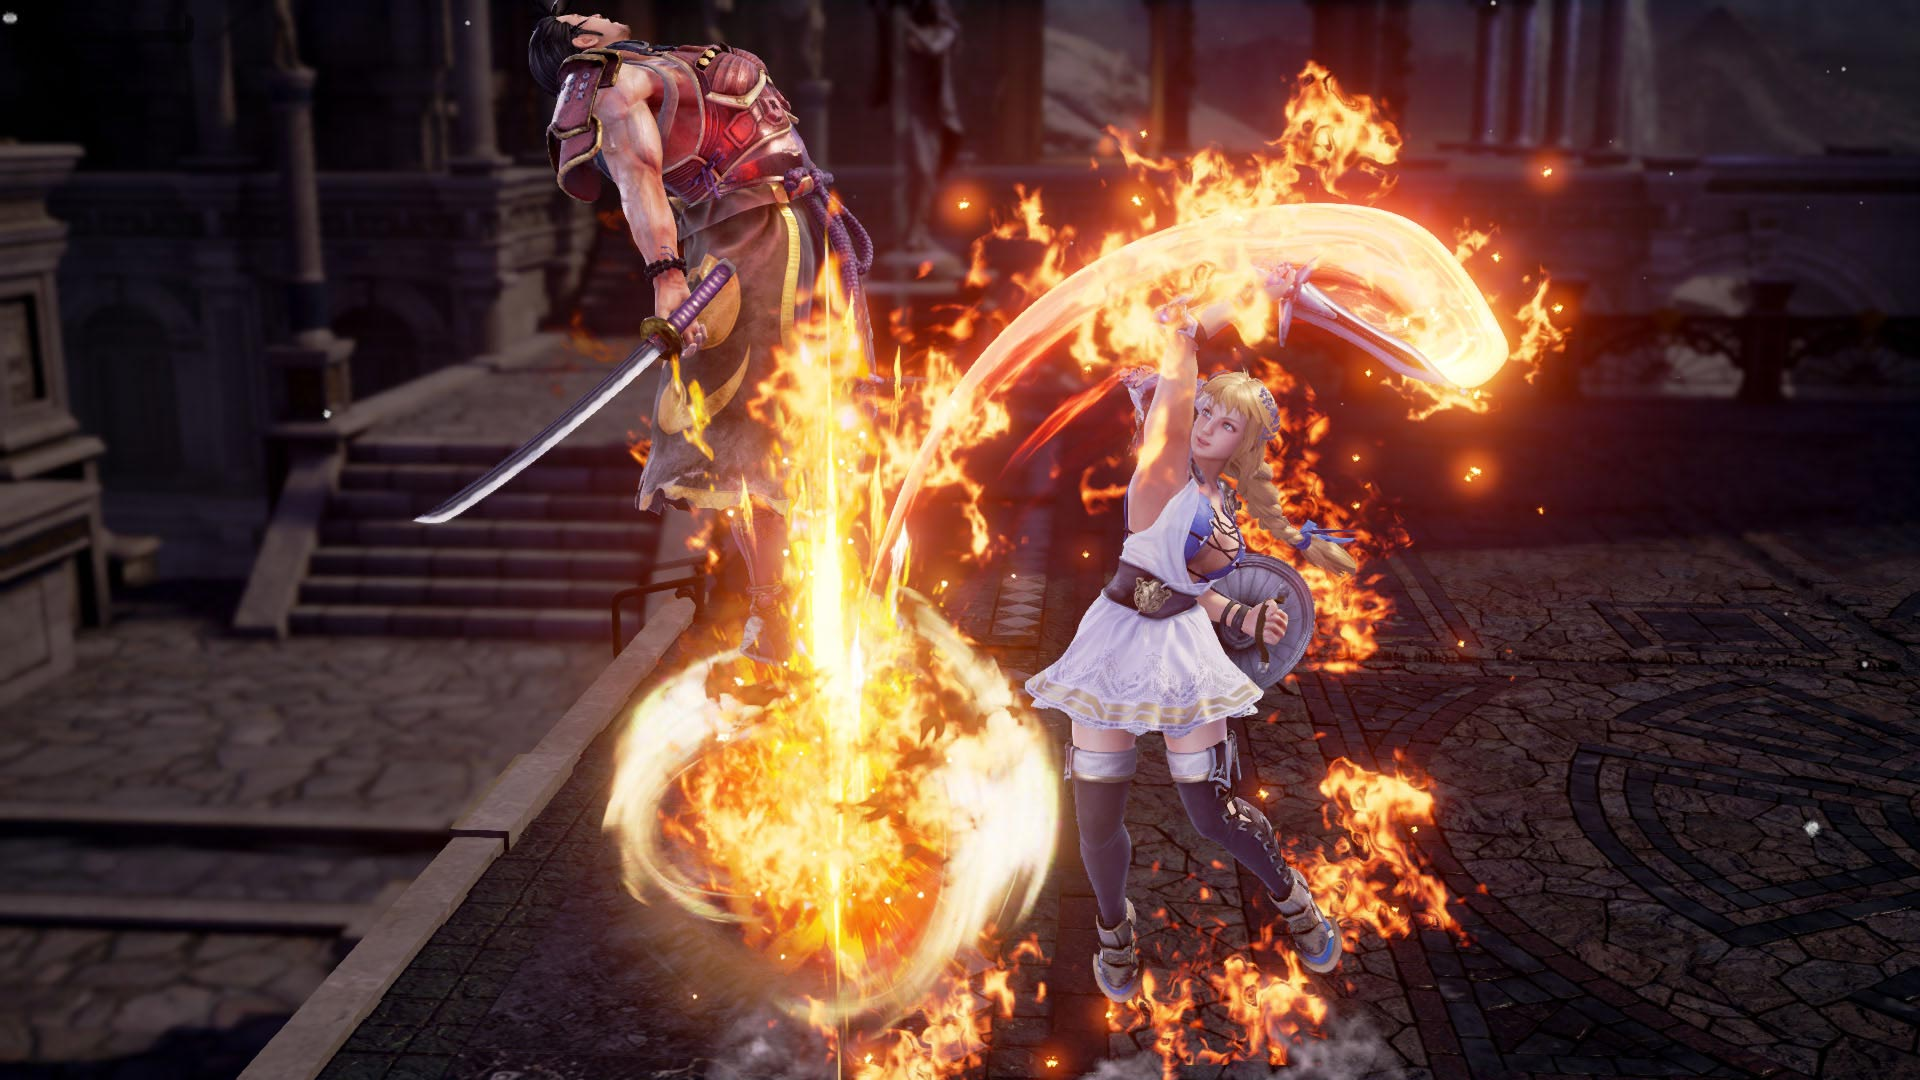 Soul Calibur 6 screeshots 7 out of 16 image gallery